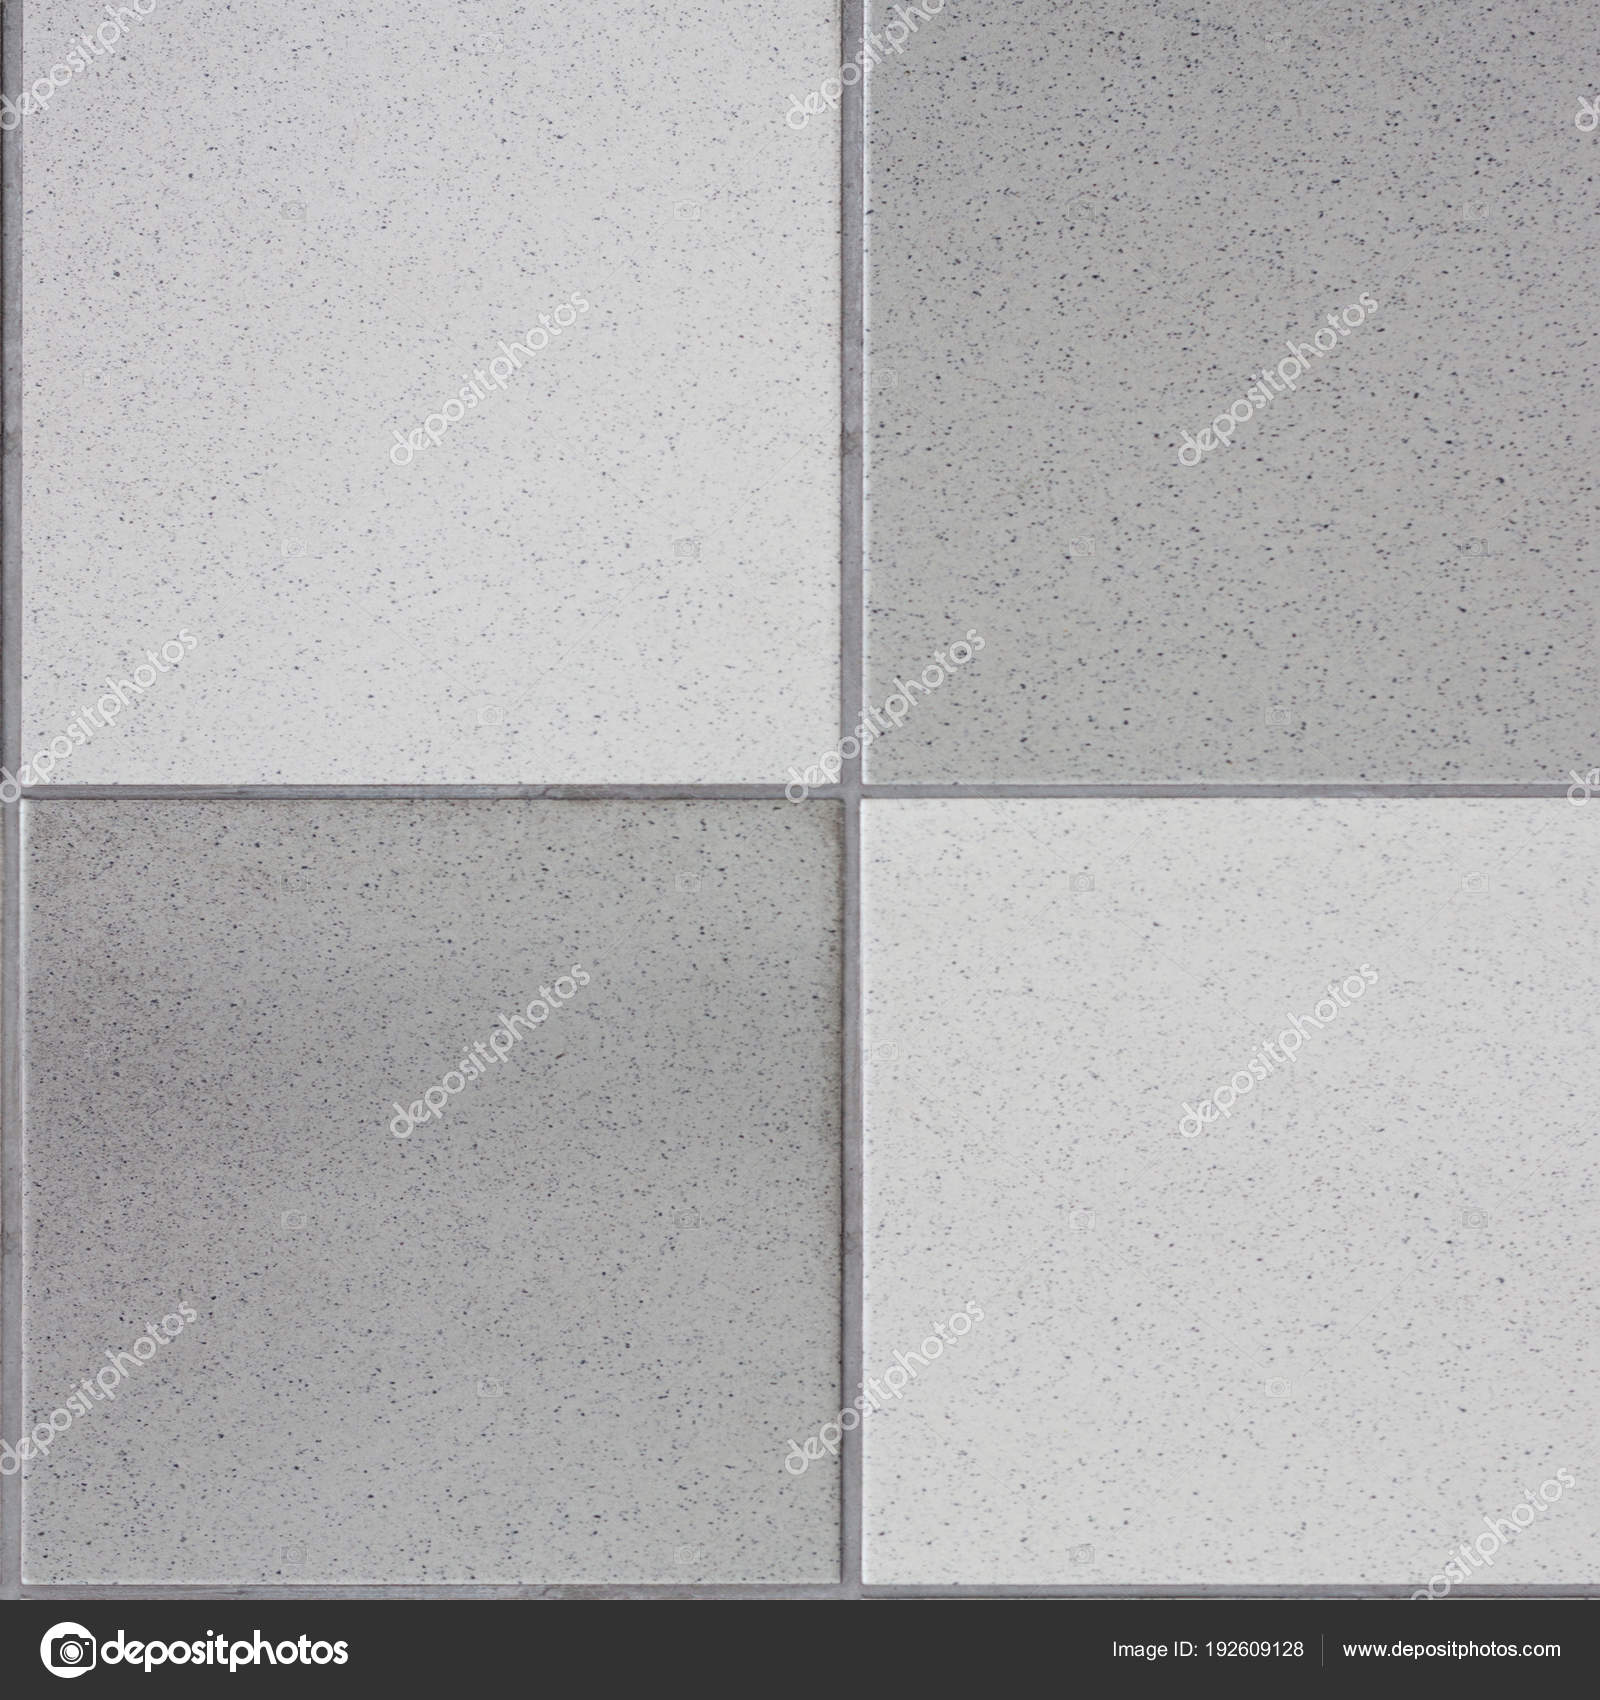 White and black tiles floor. Closed up of glossy ceramic brick tiles ...